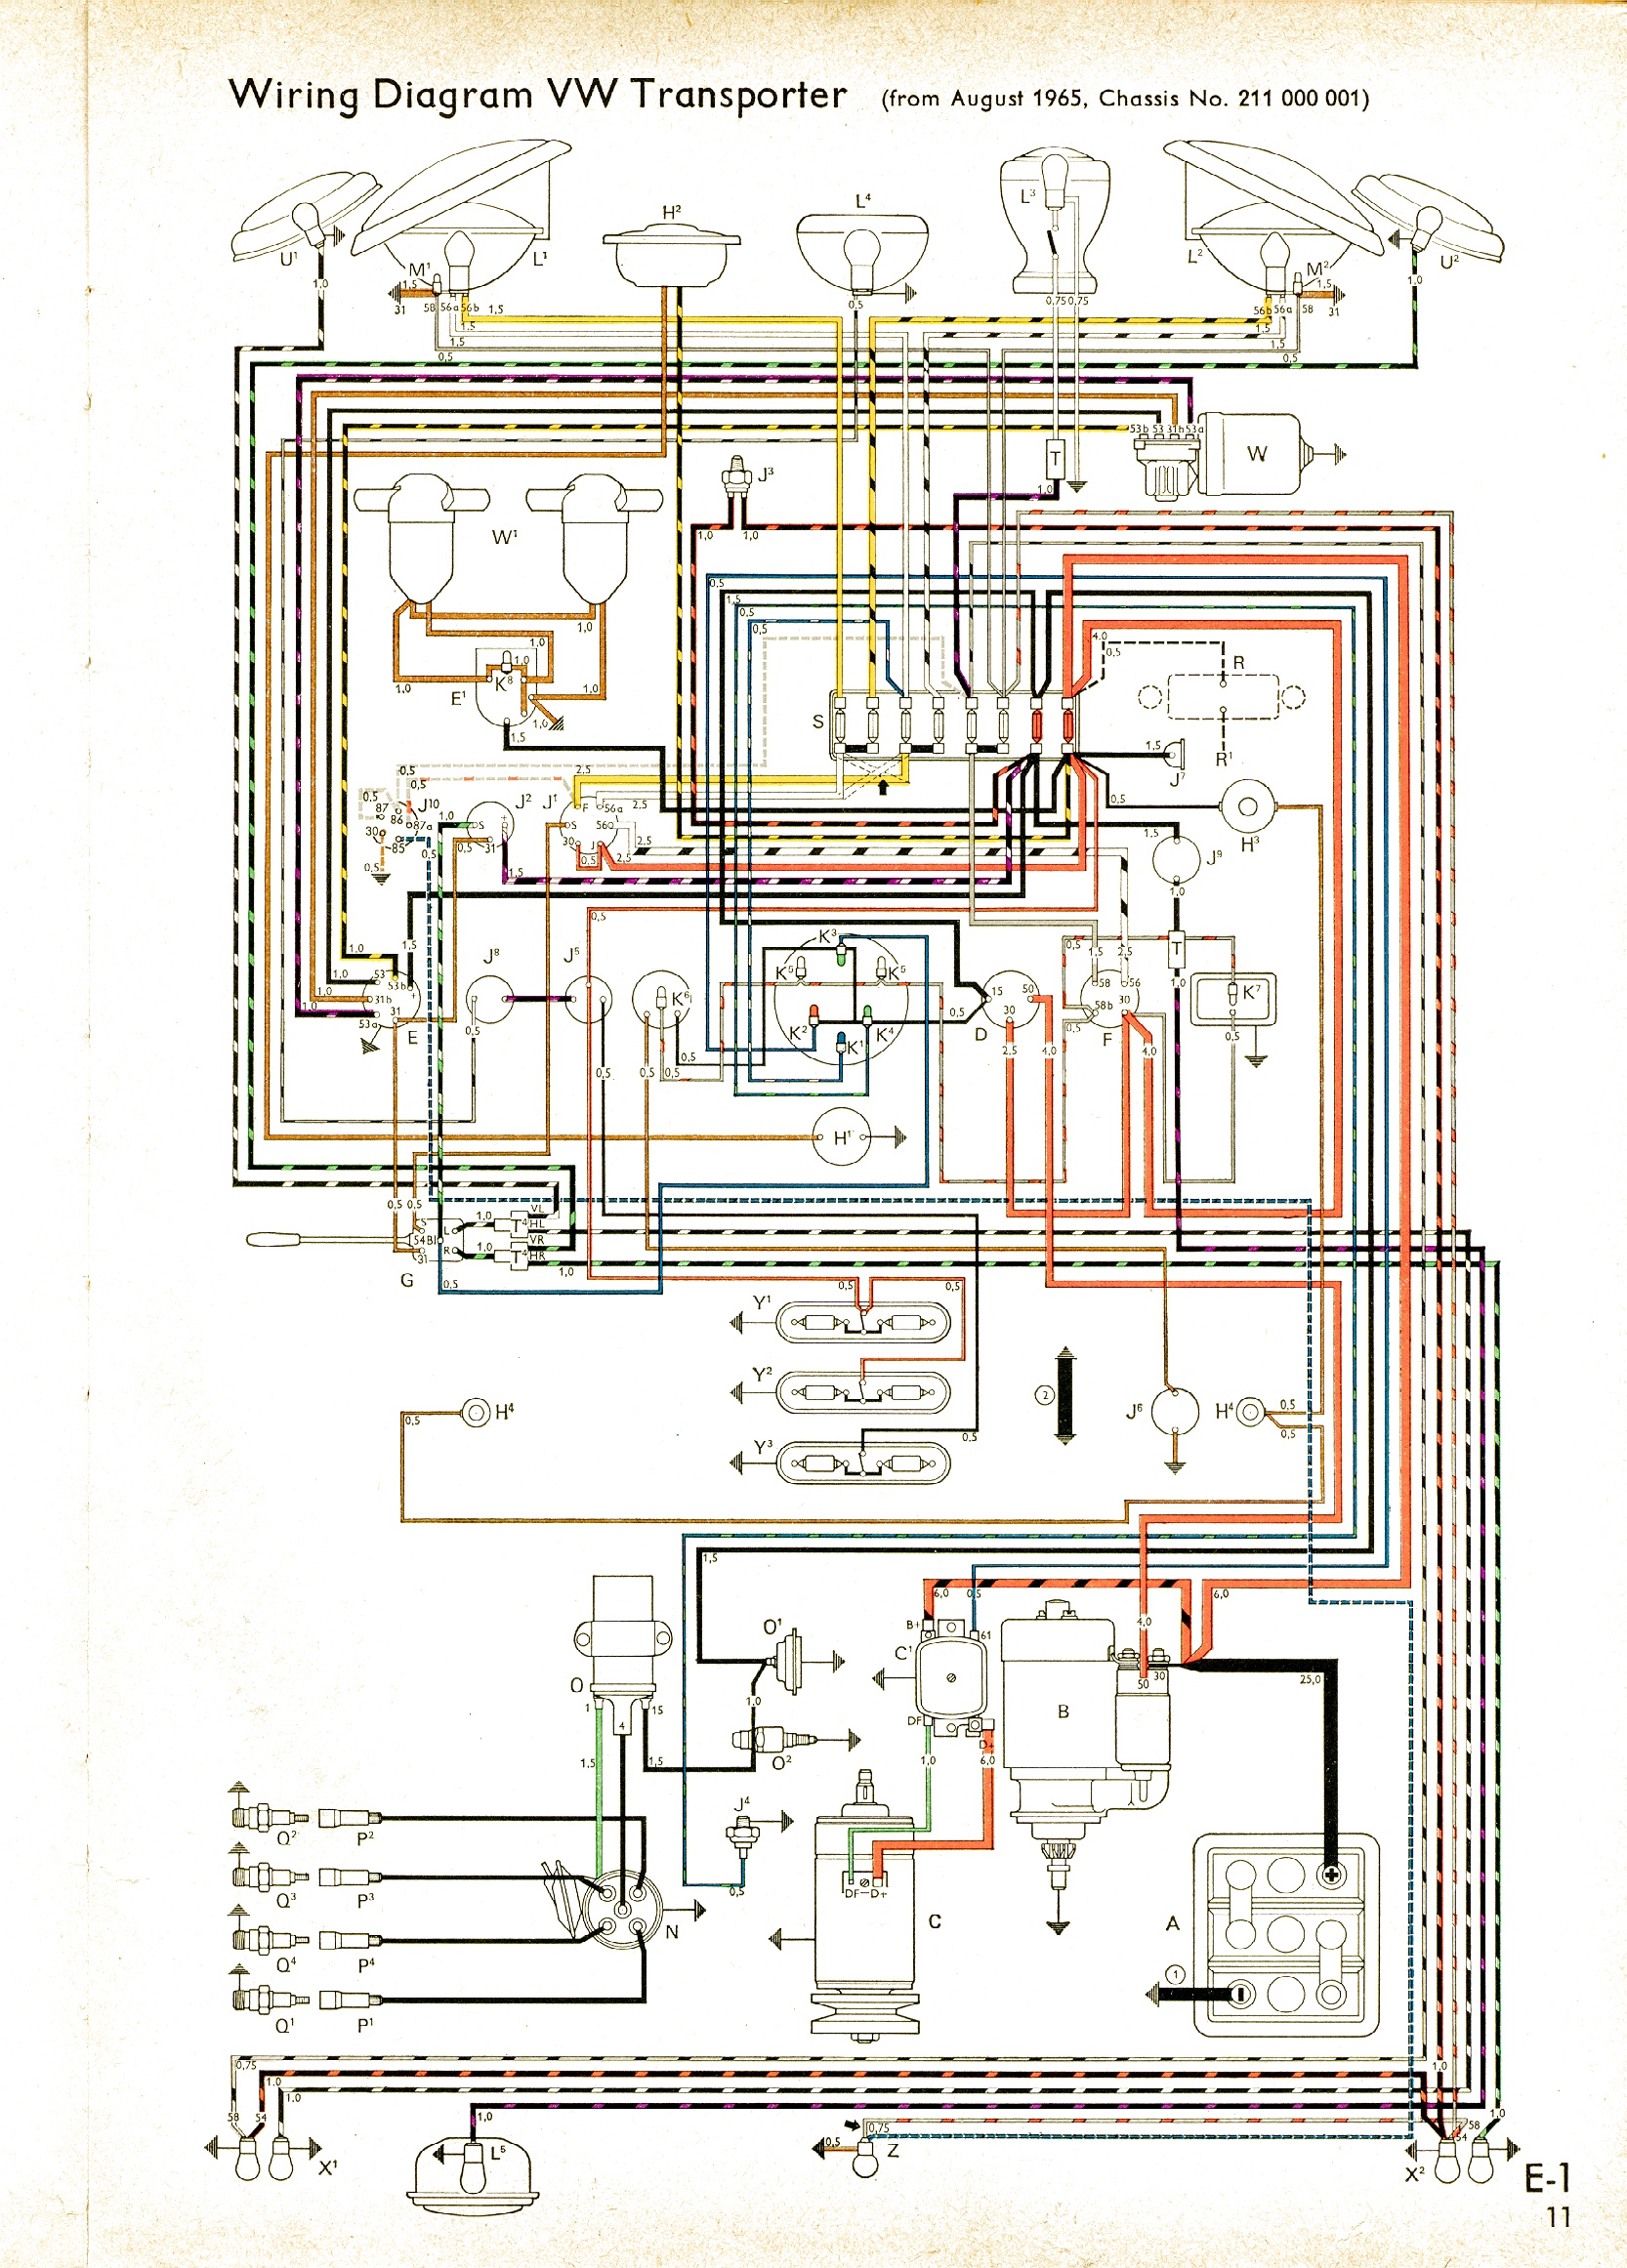 Wiring Schematics Library Dt1 250 Dt1b Enduro Motorcycle Diagram Com Vw Bus And Other Diagrams